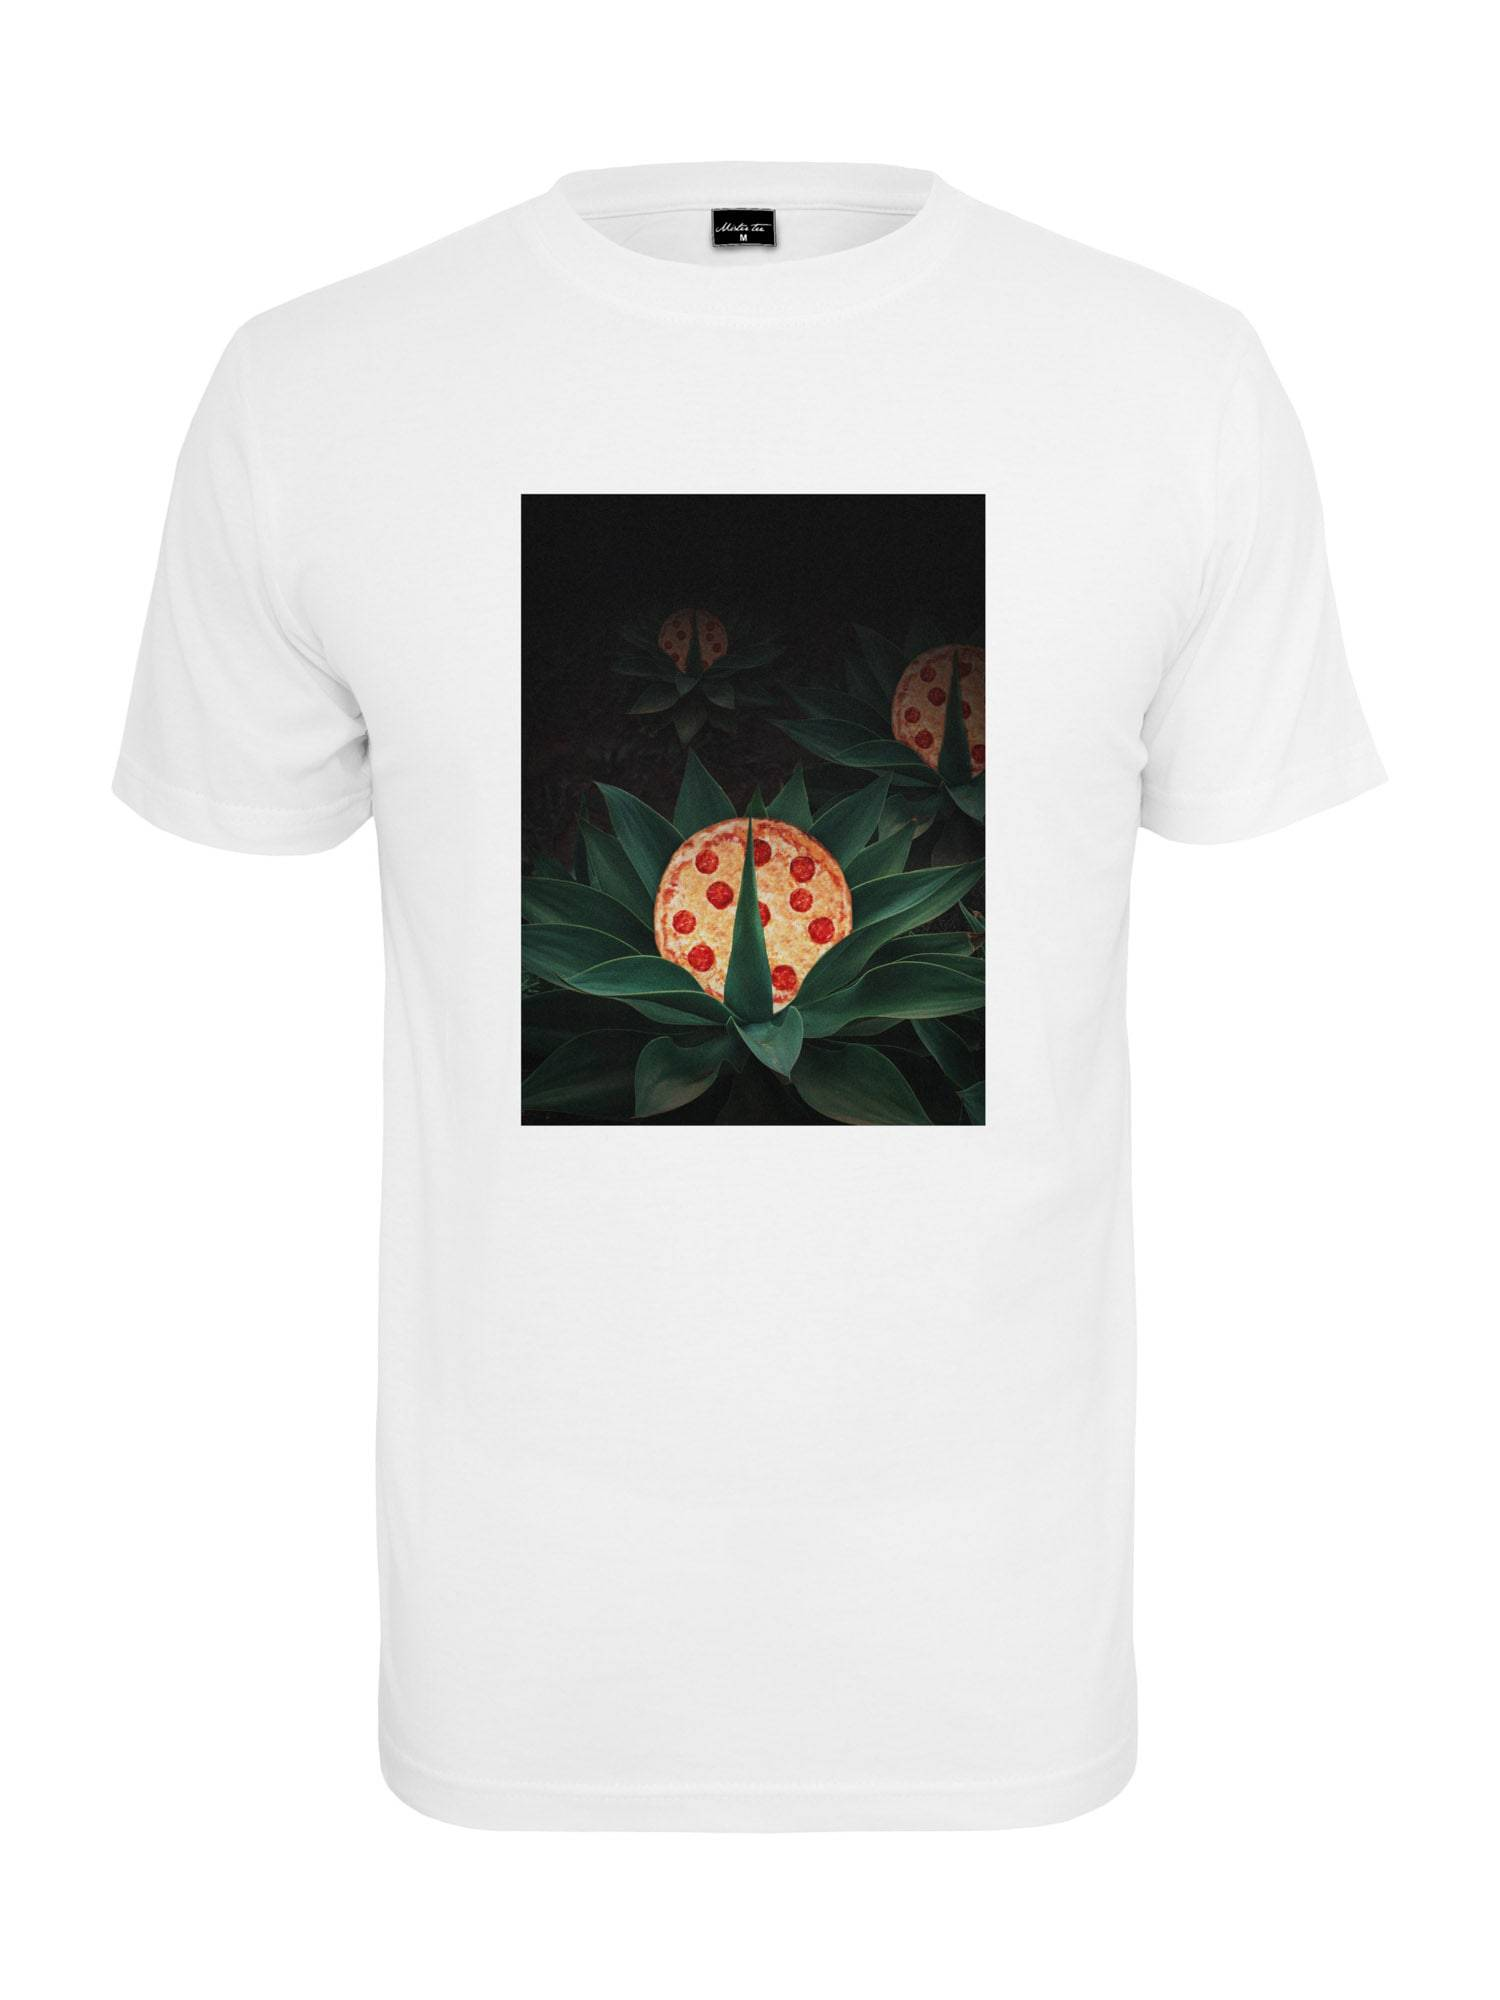 Tee T-Shirt 'Pizza Plant''  - Blanc - Taille: XXL - male